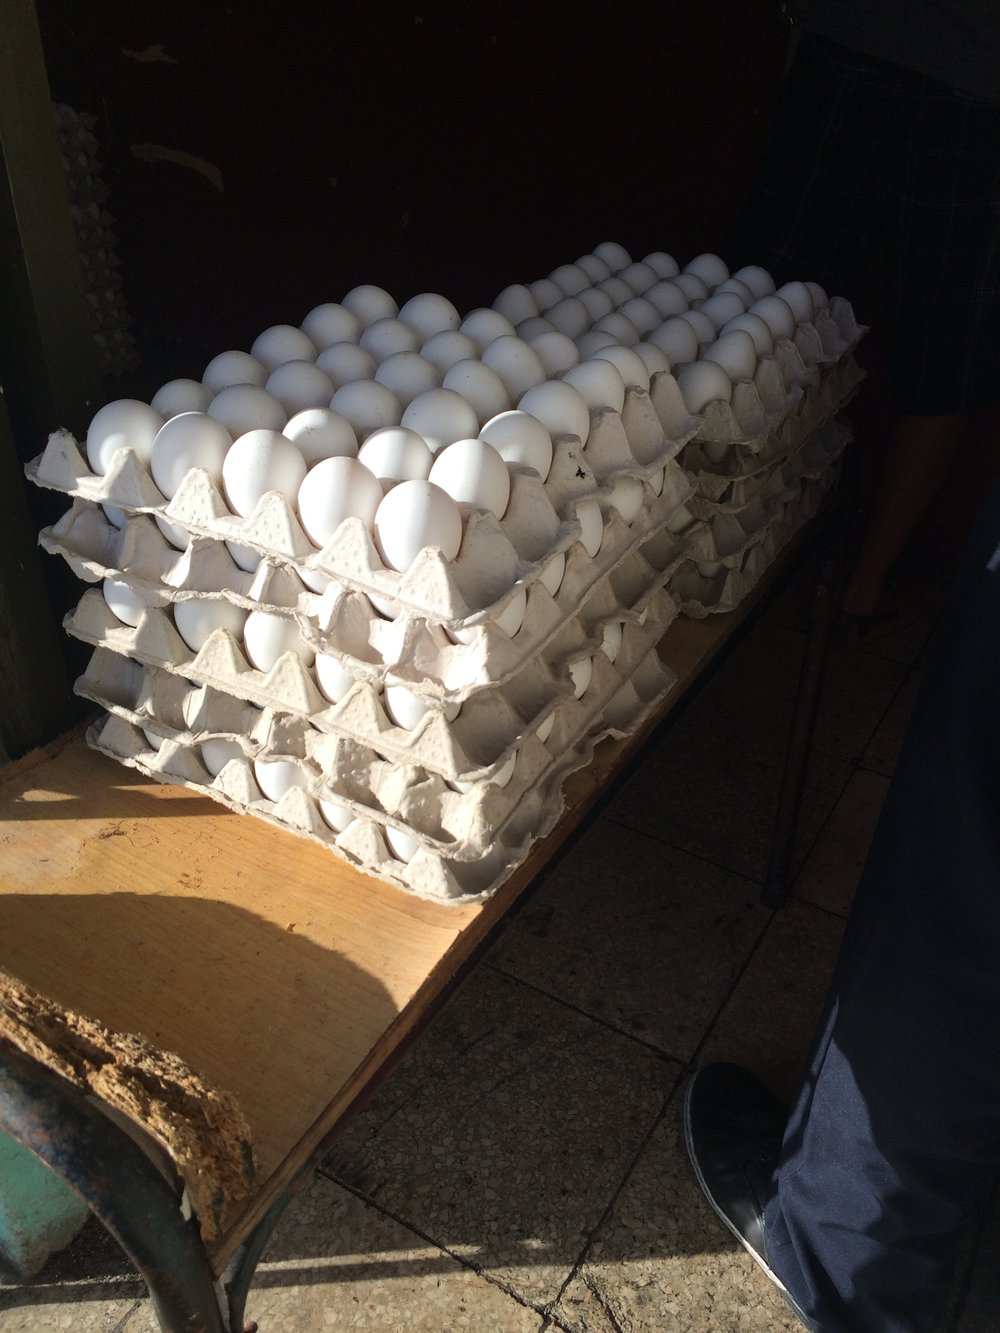 The once or twice a month delivery of eggs at my local bodega.